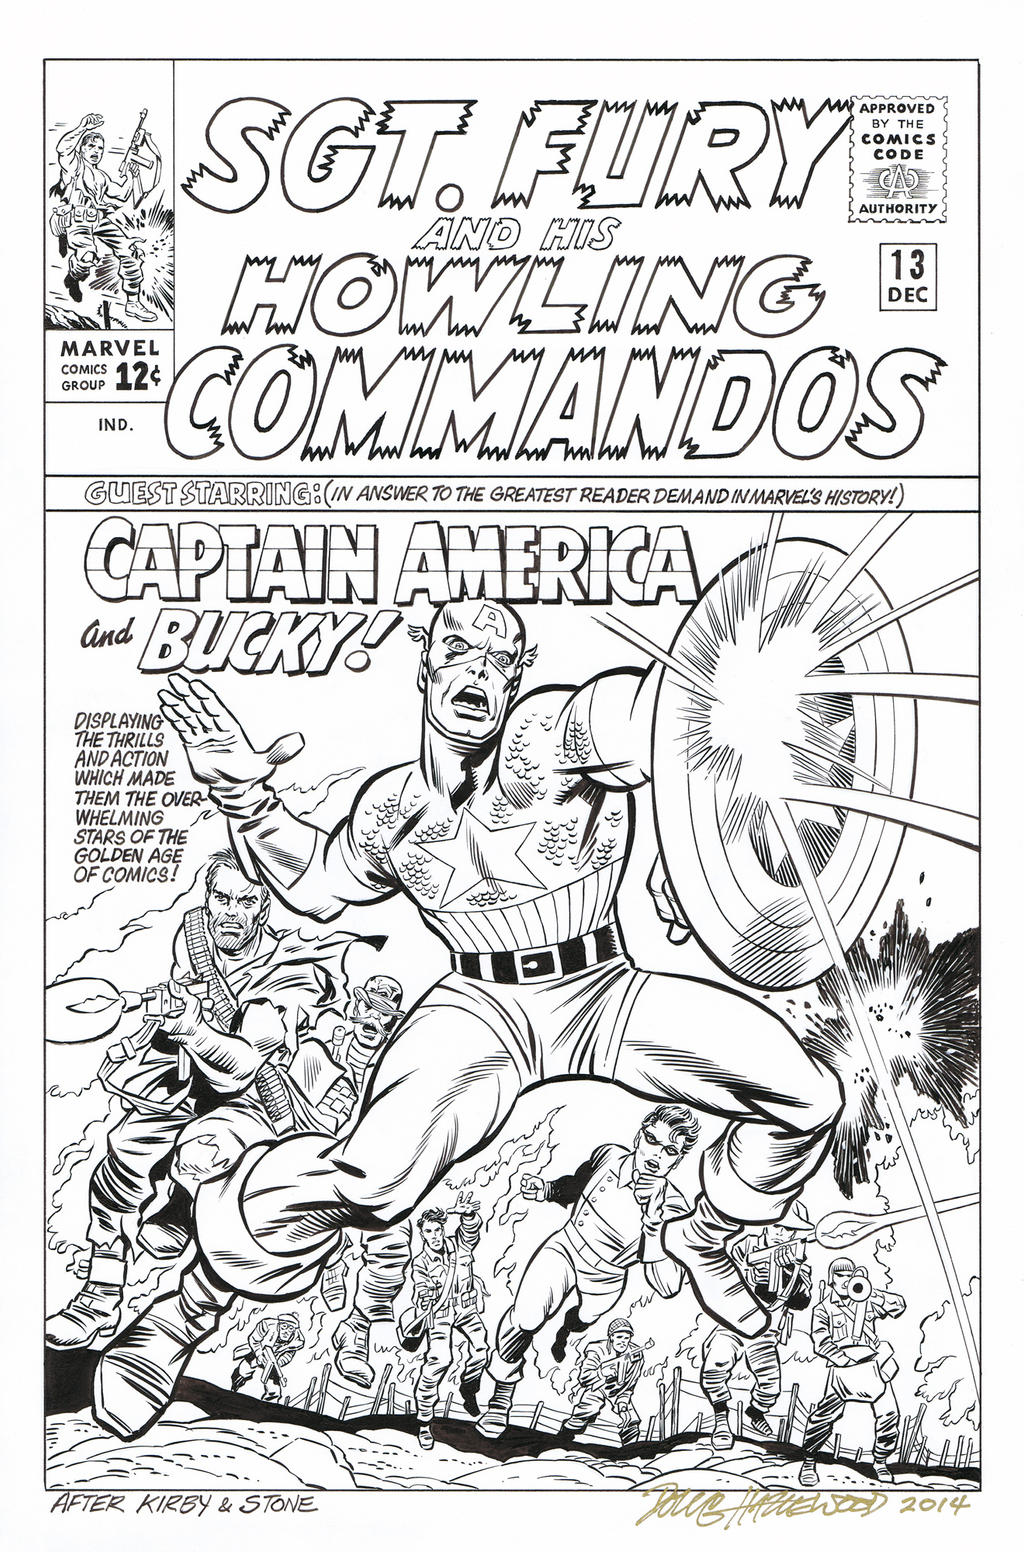 SGT. FURY #13 Cover Recreation - CAPTAIN AMERICA! by DRHazlewood